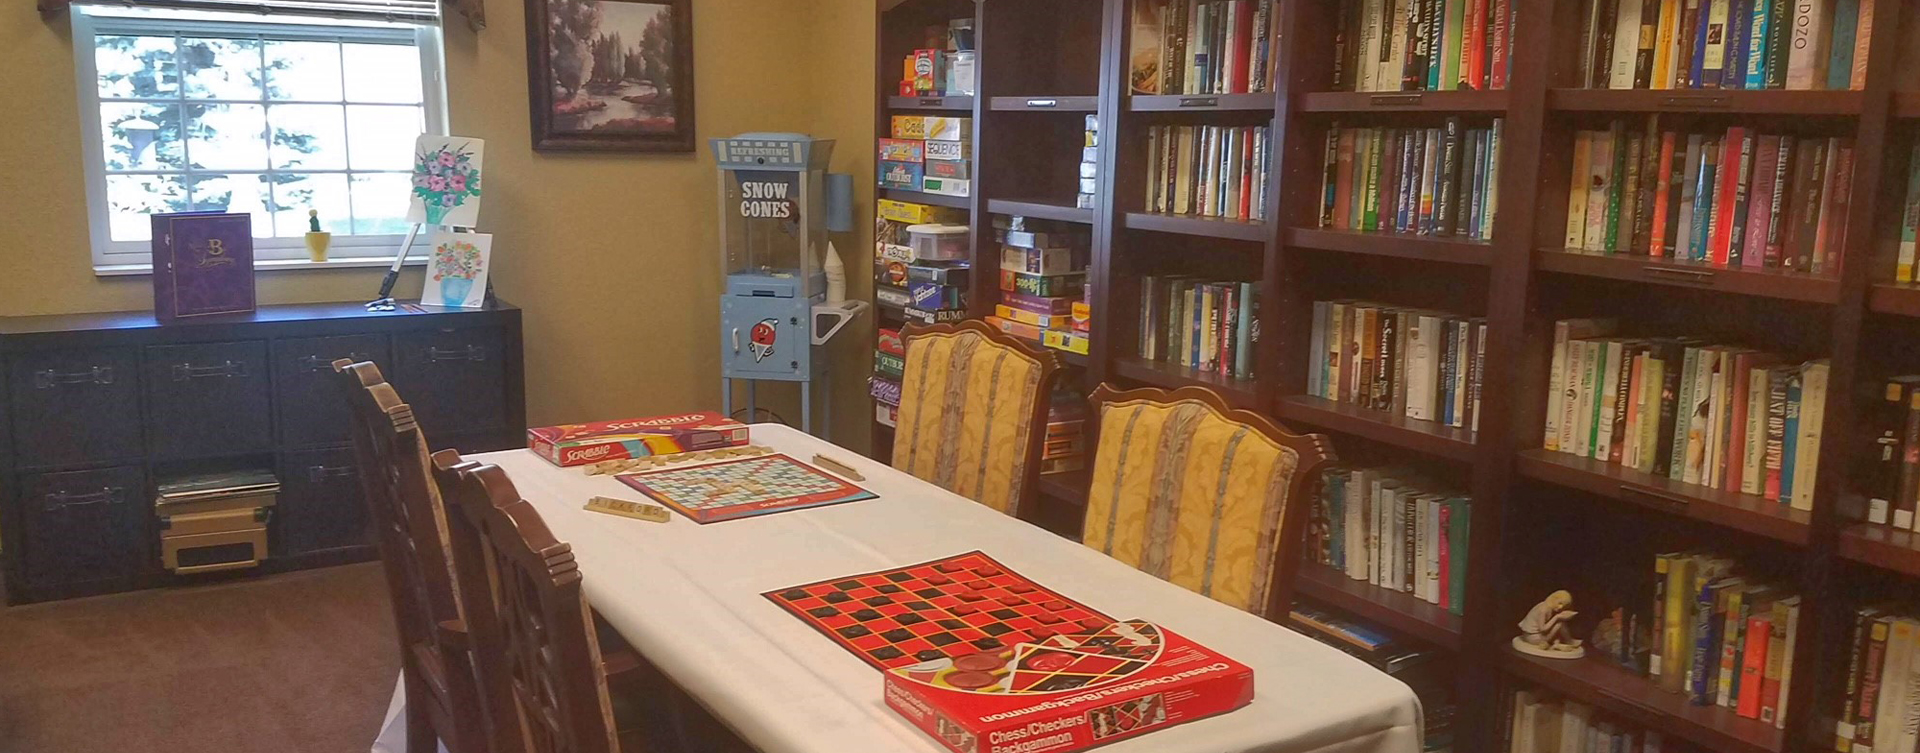 Enjoy a good card game with friends in the activity room at Bickford of Okemos